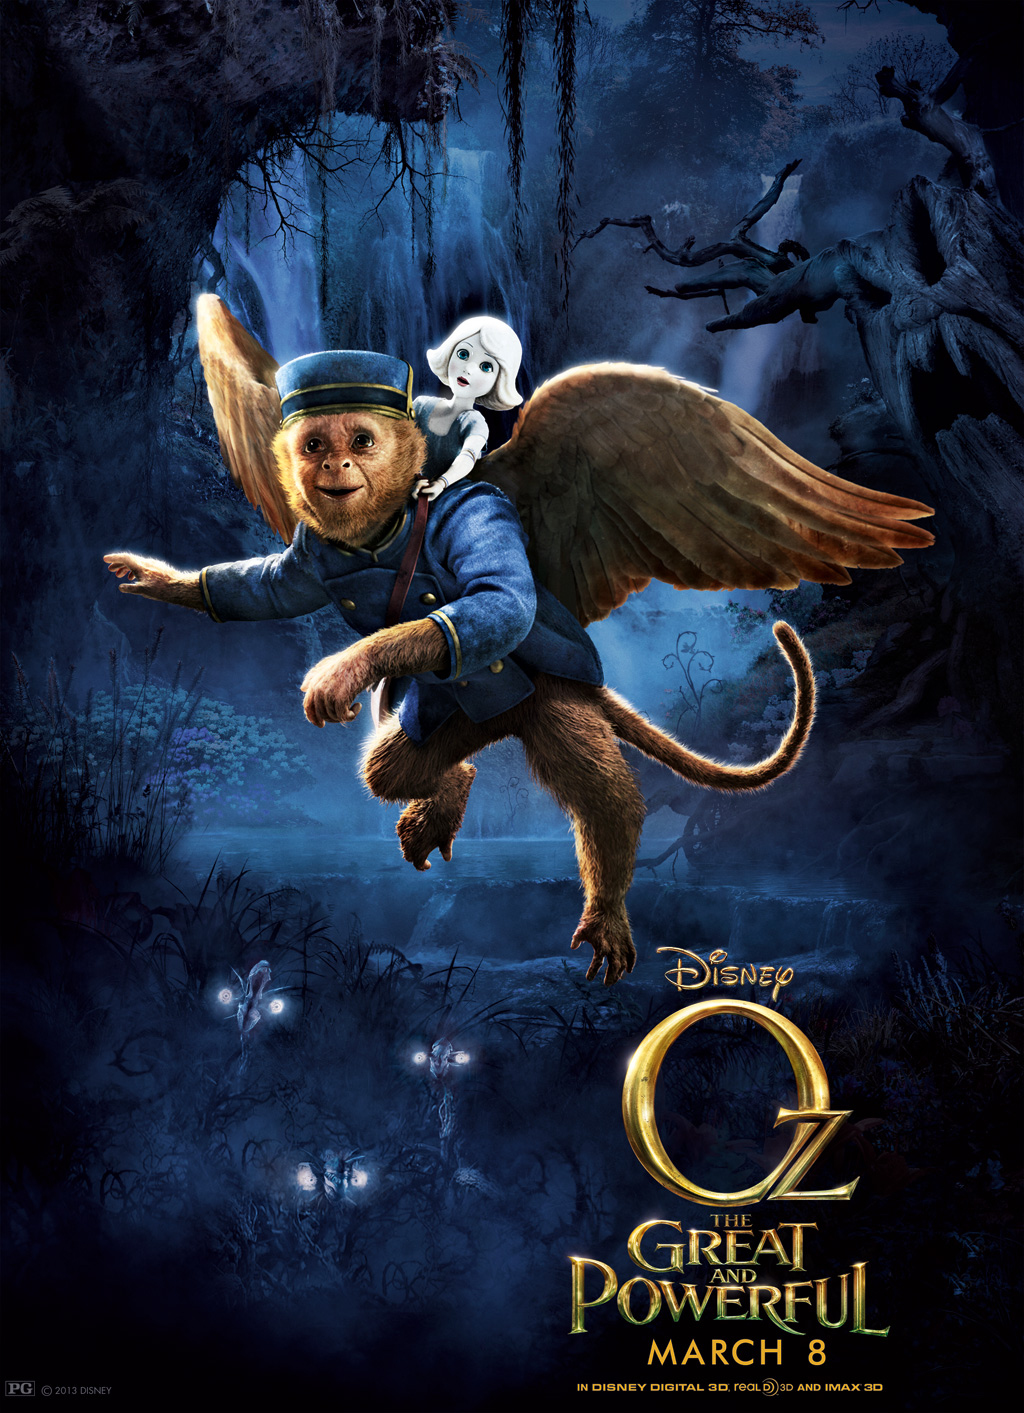 Oz the Great and Powerful - Movie Poster #10 (Original)